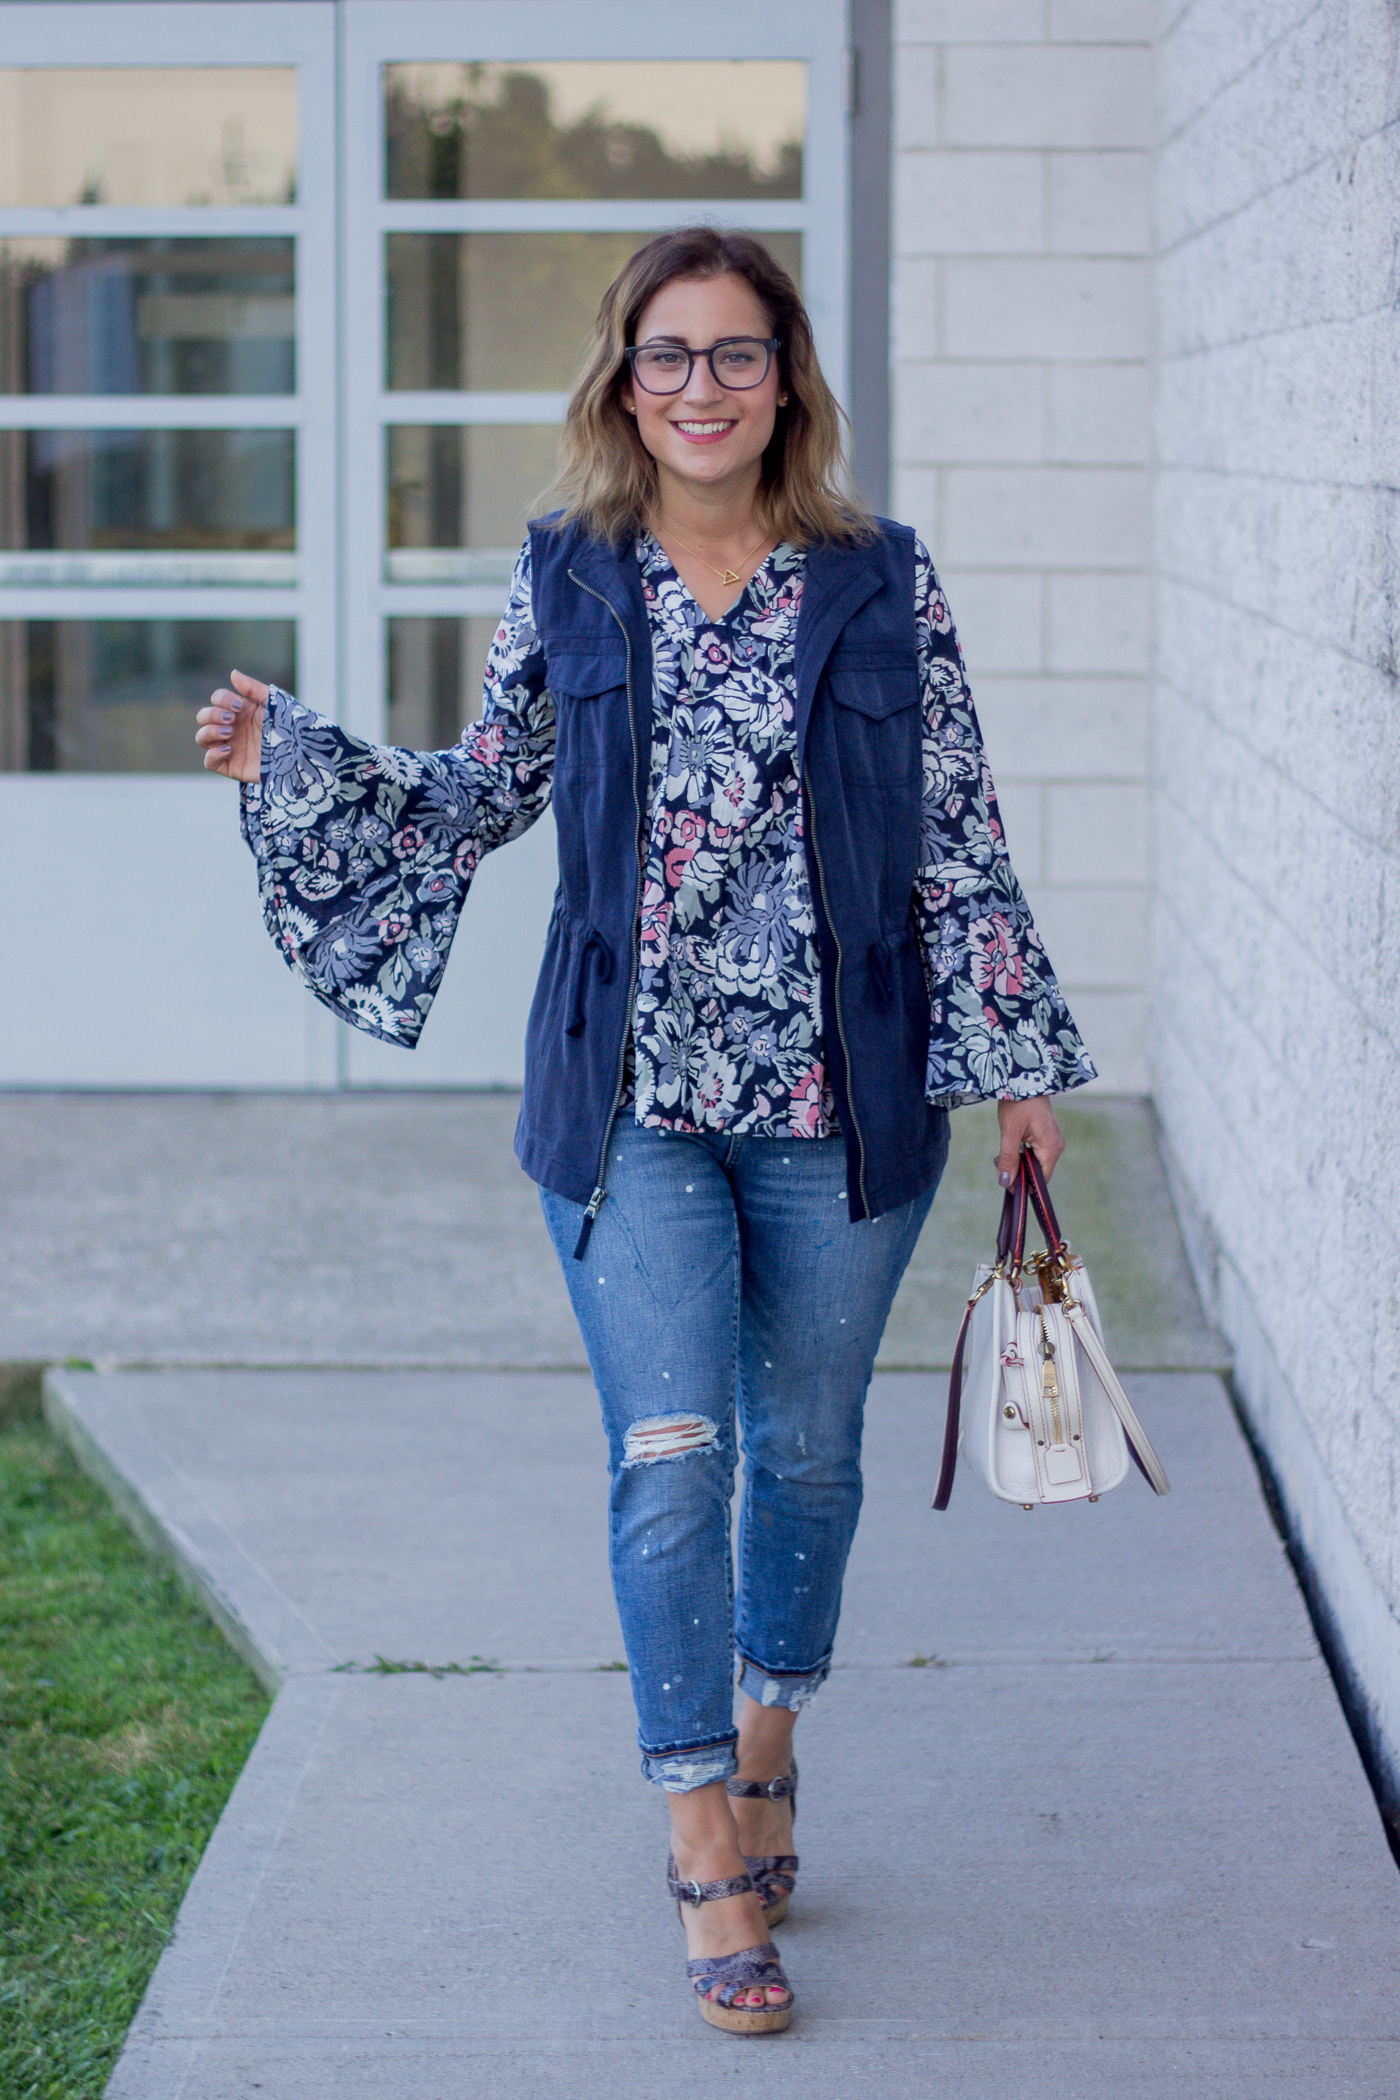 Summer to fall transitional pieces from Amazon, as worn by Canadian fashion blogger, Jackie at Something About That